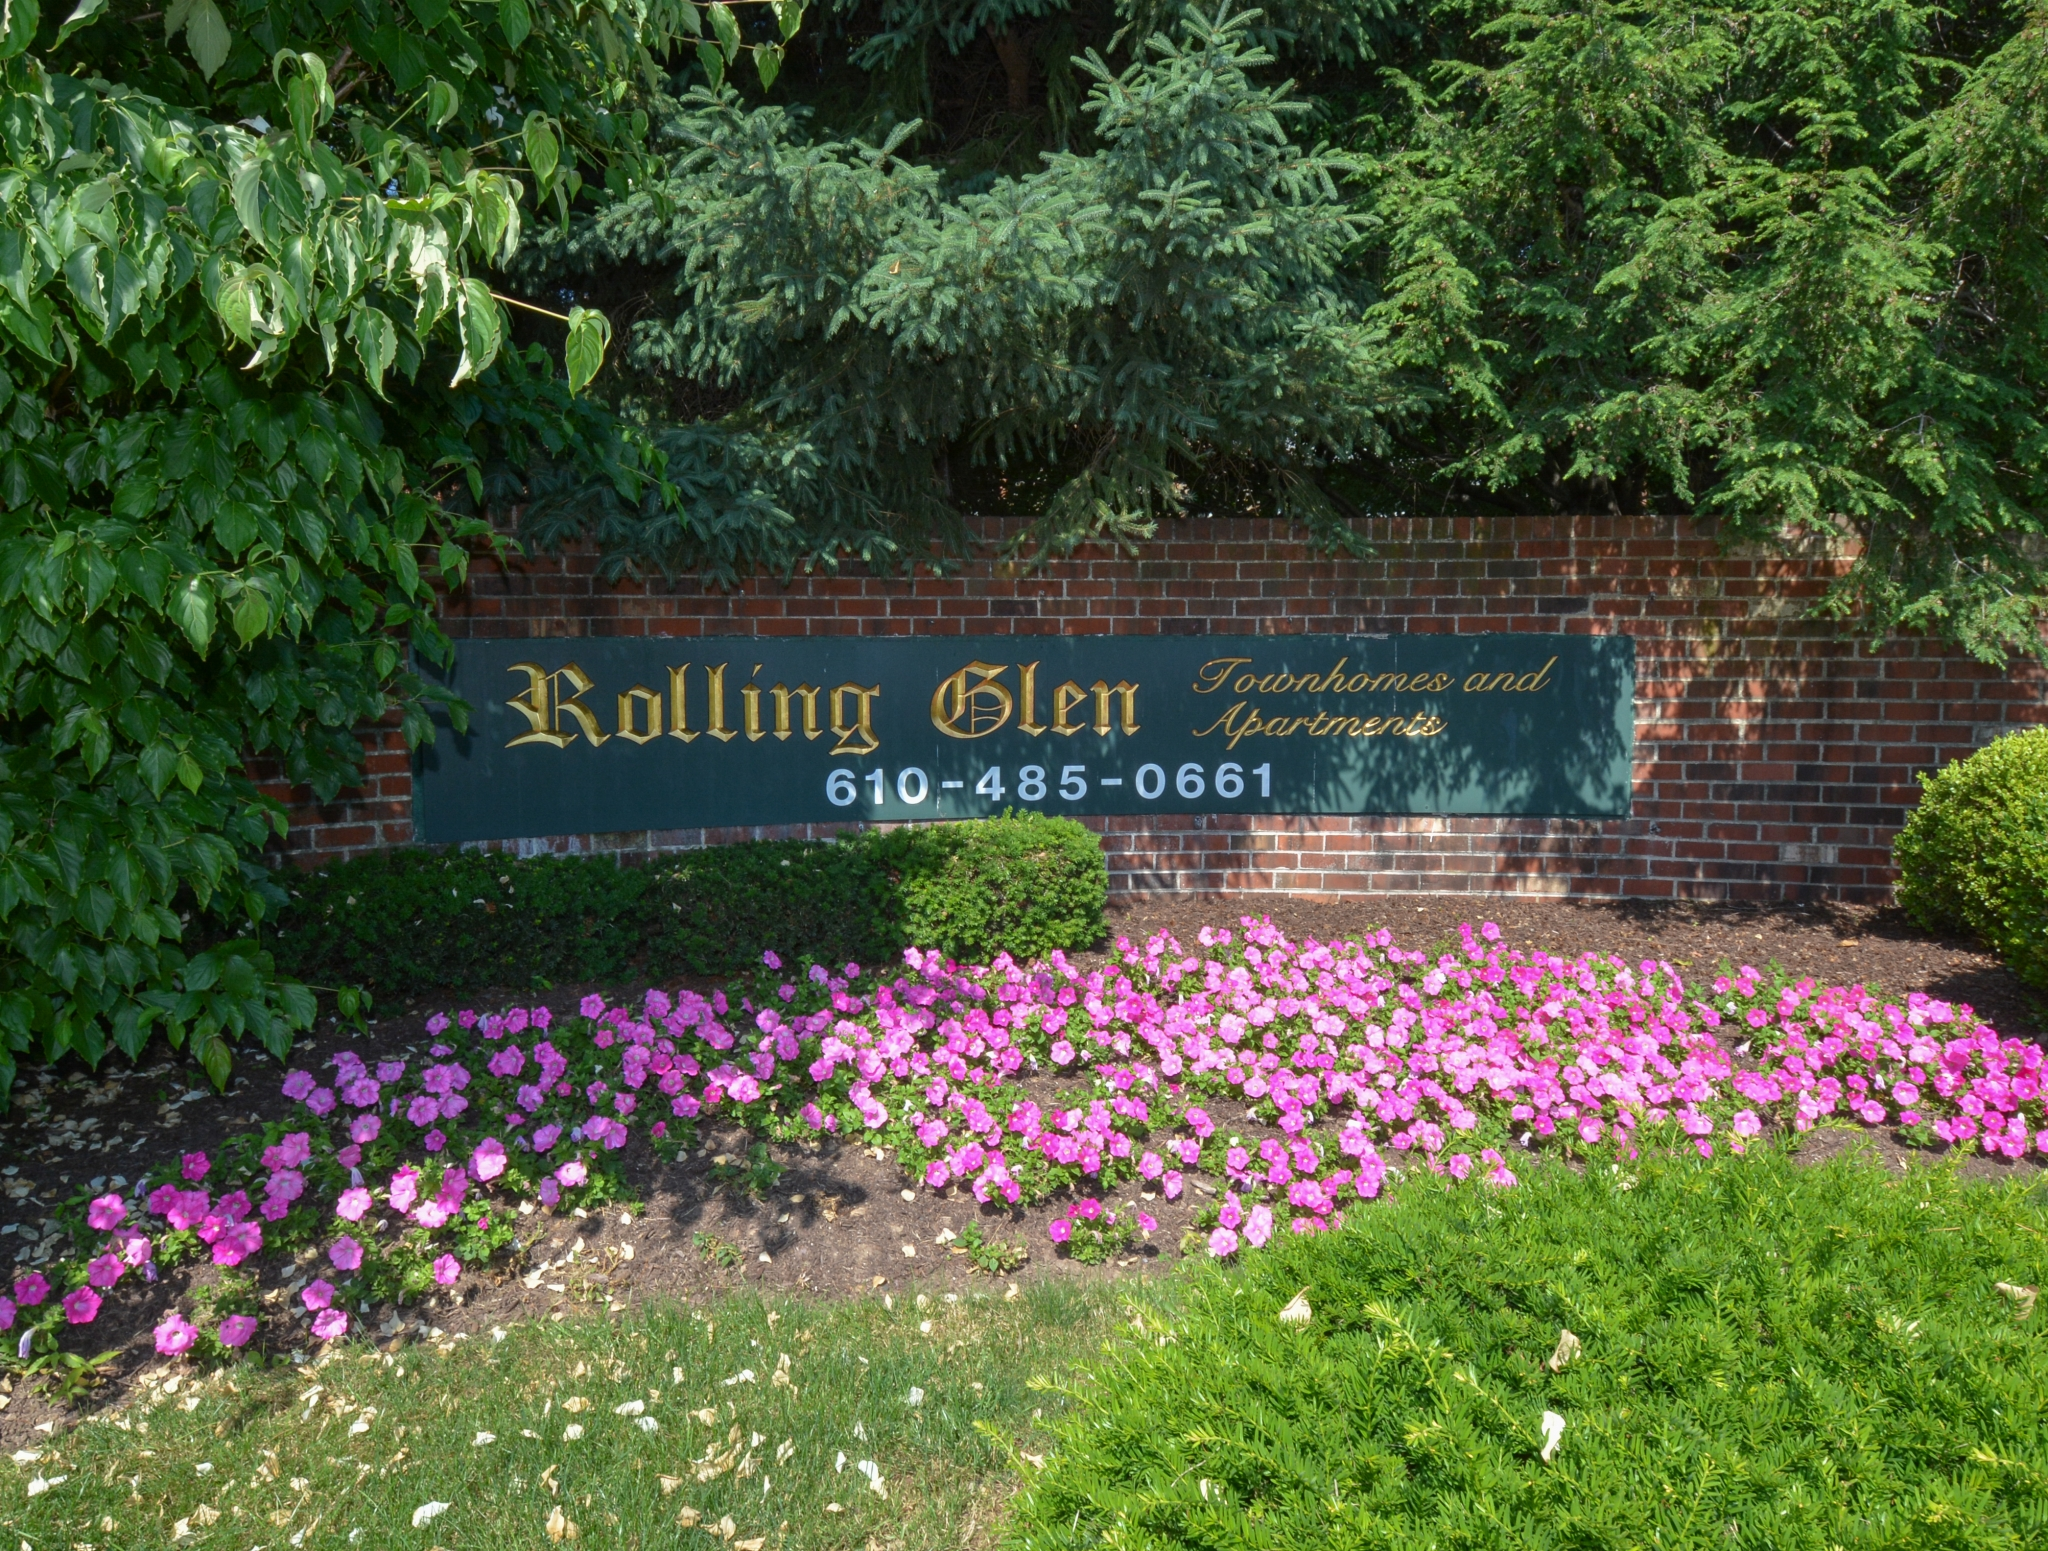 Apartments For Rent In Boothwyn PA | Rolling Glen Townhomes and Apartments